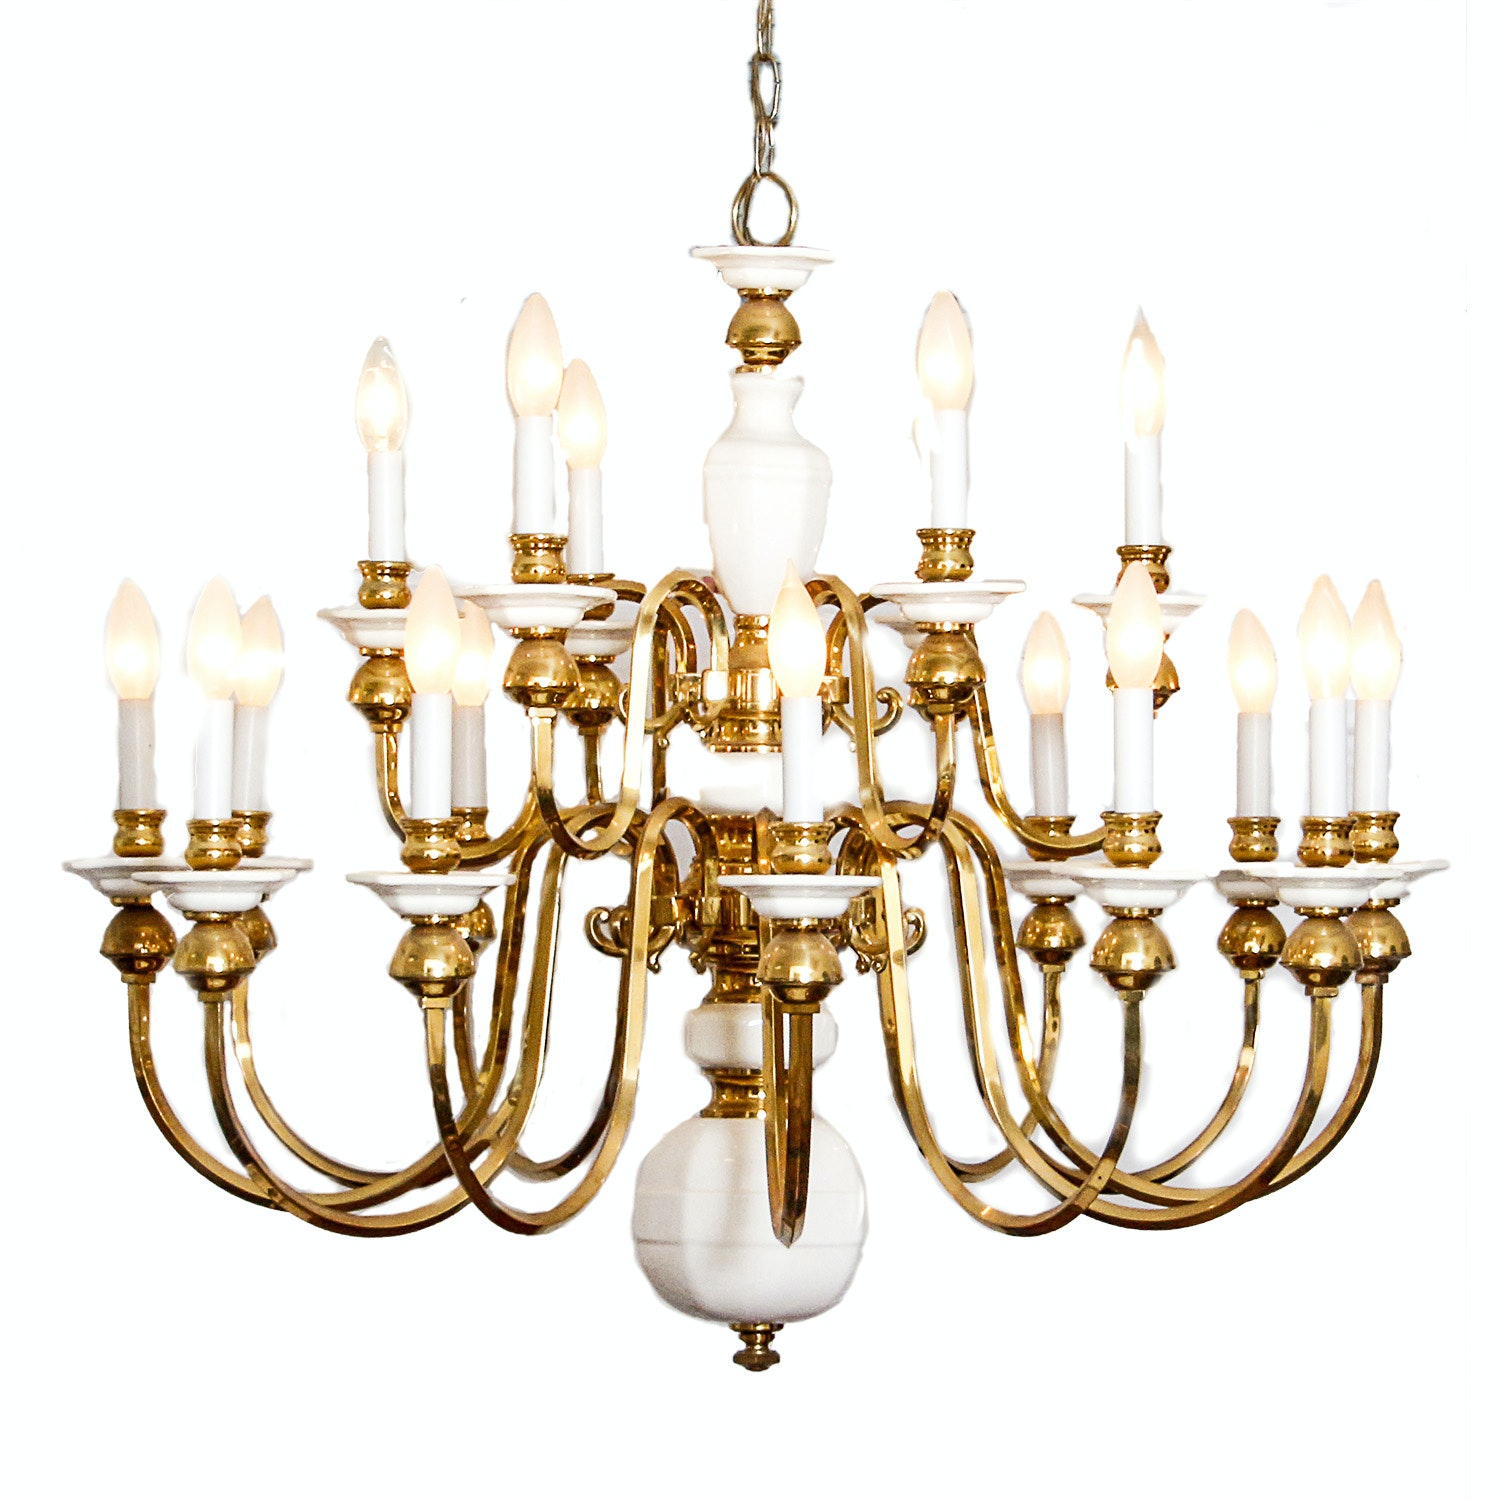 Ceramic and Brass Hanging Chandelier